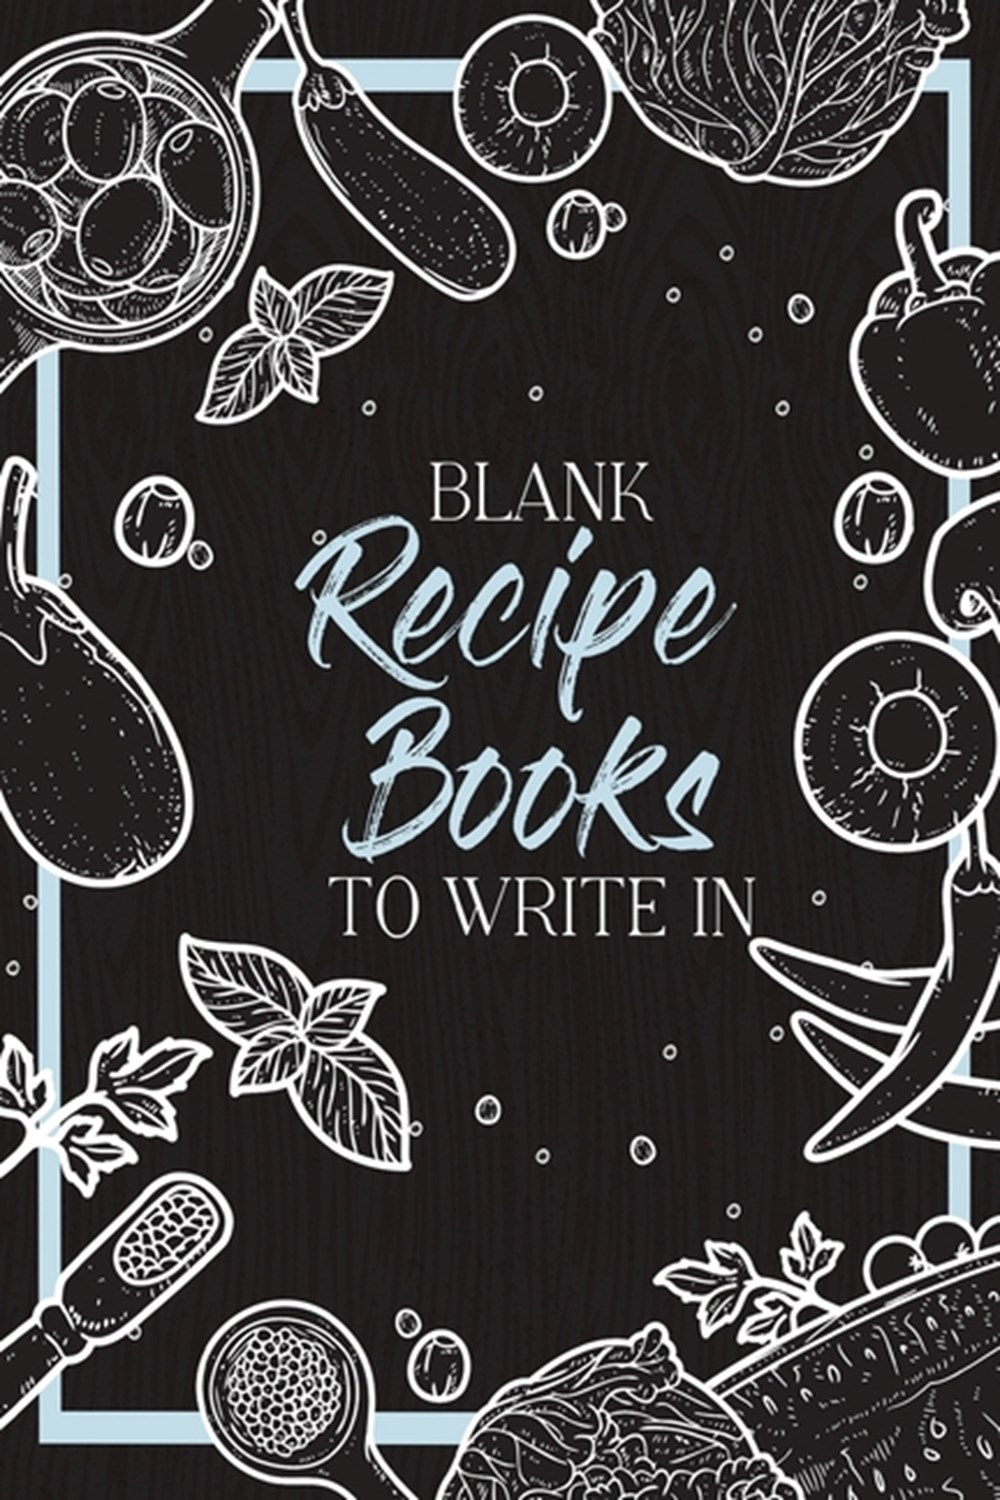 Blank Recipe Books To Write In Make Your Own Family Cookbook - My Best Recipes And Blank Recipe Book